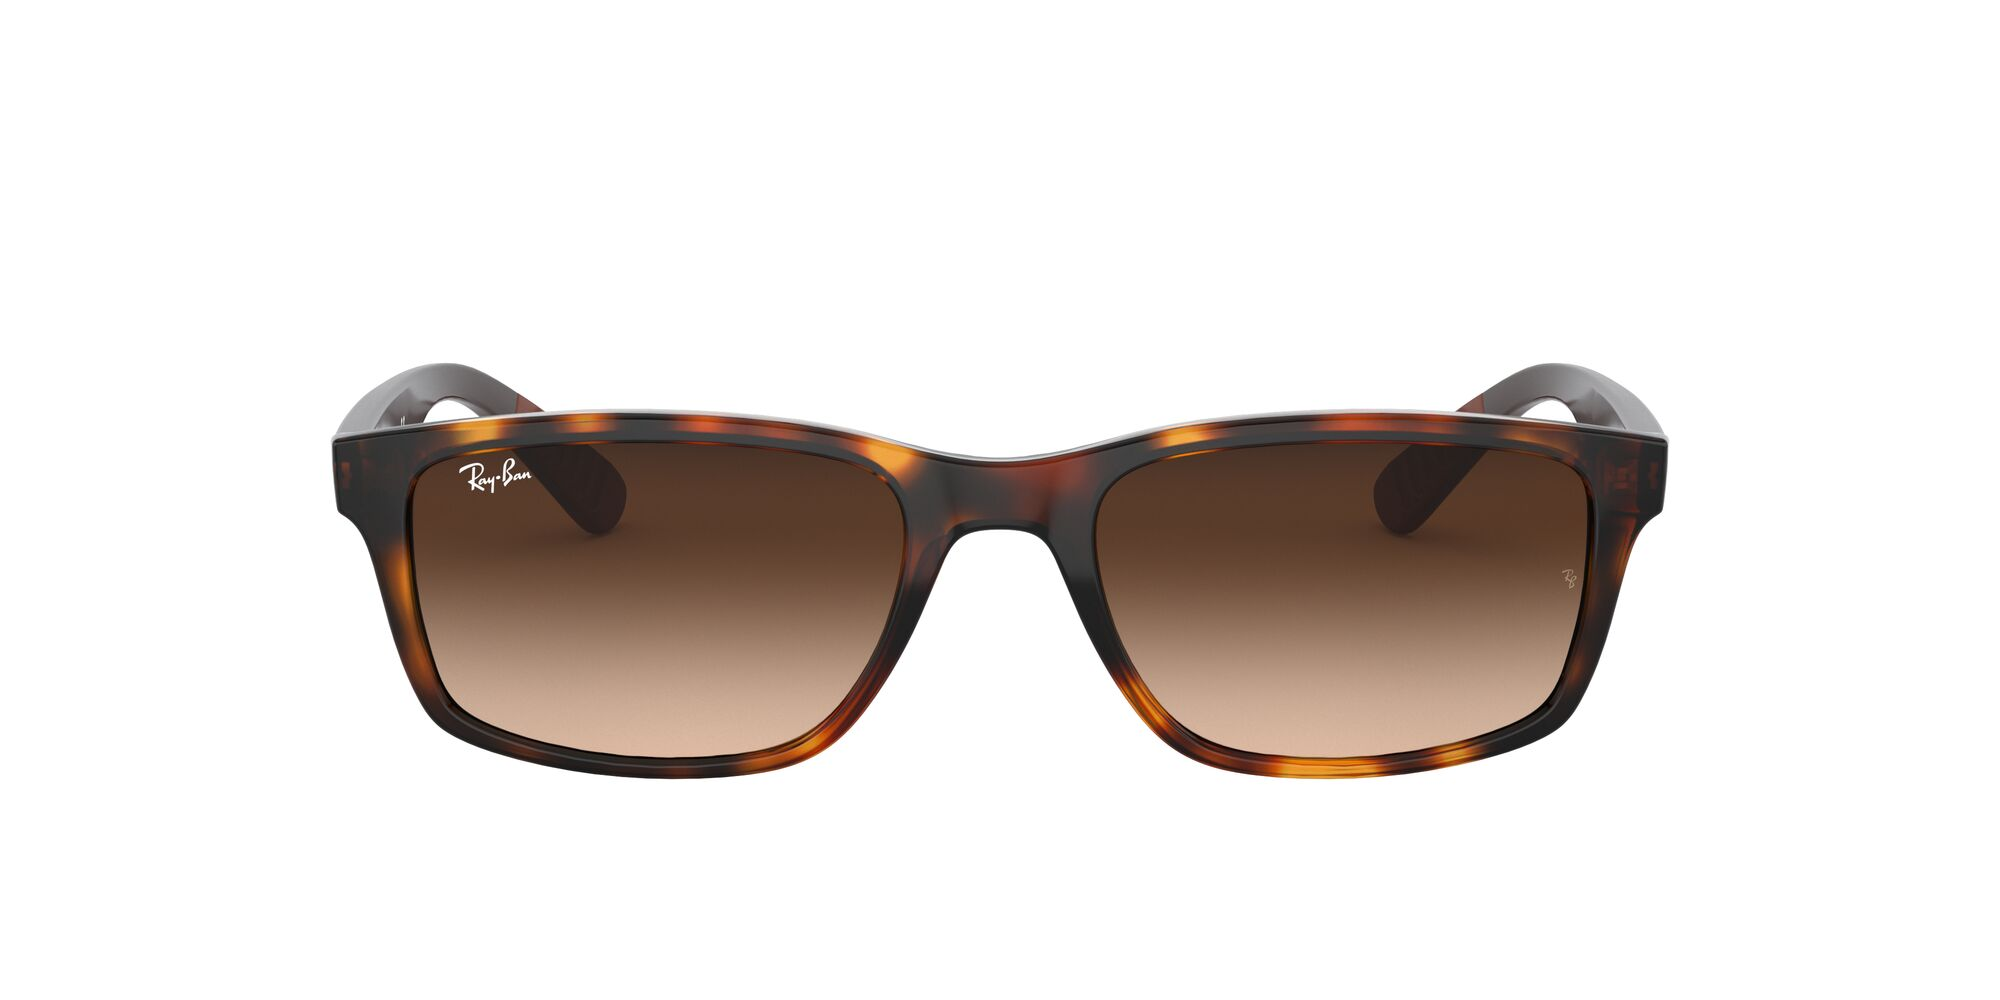 Front Ray-Ban Ray-Ban 0RB4234 620513 58/16 Bruin, Zilver/Bruin